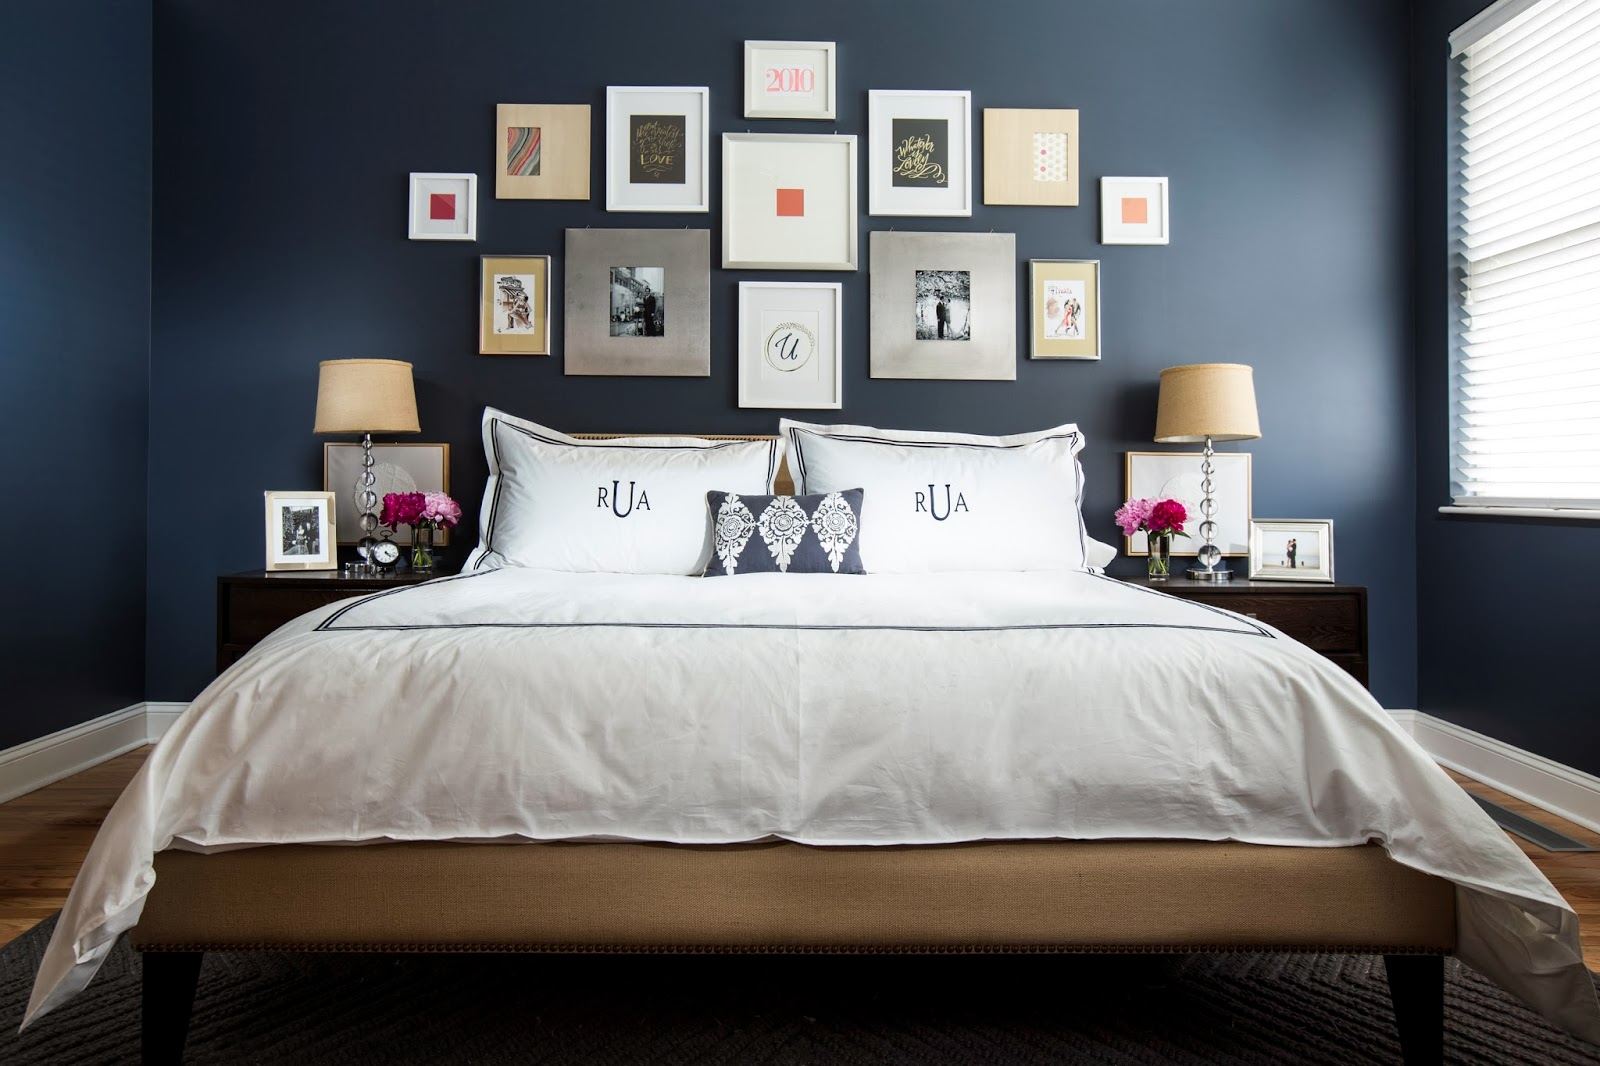 Bedroom design ideas for women blue - Dark Blue Bedroom Design Decor Ideas With Photo Frame Decoration